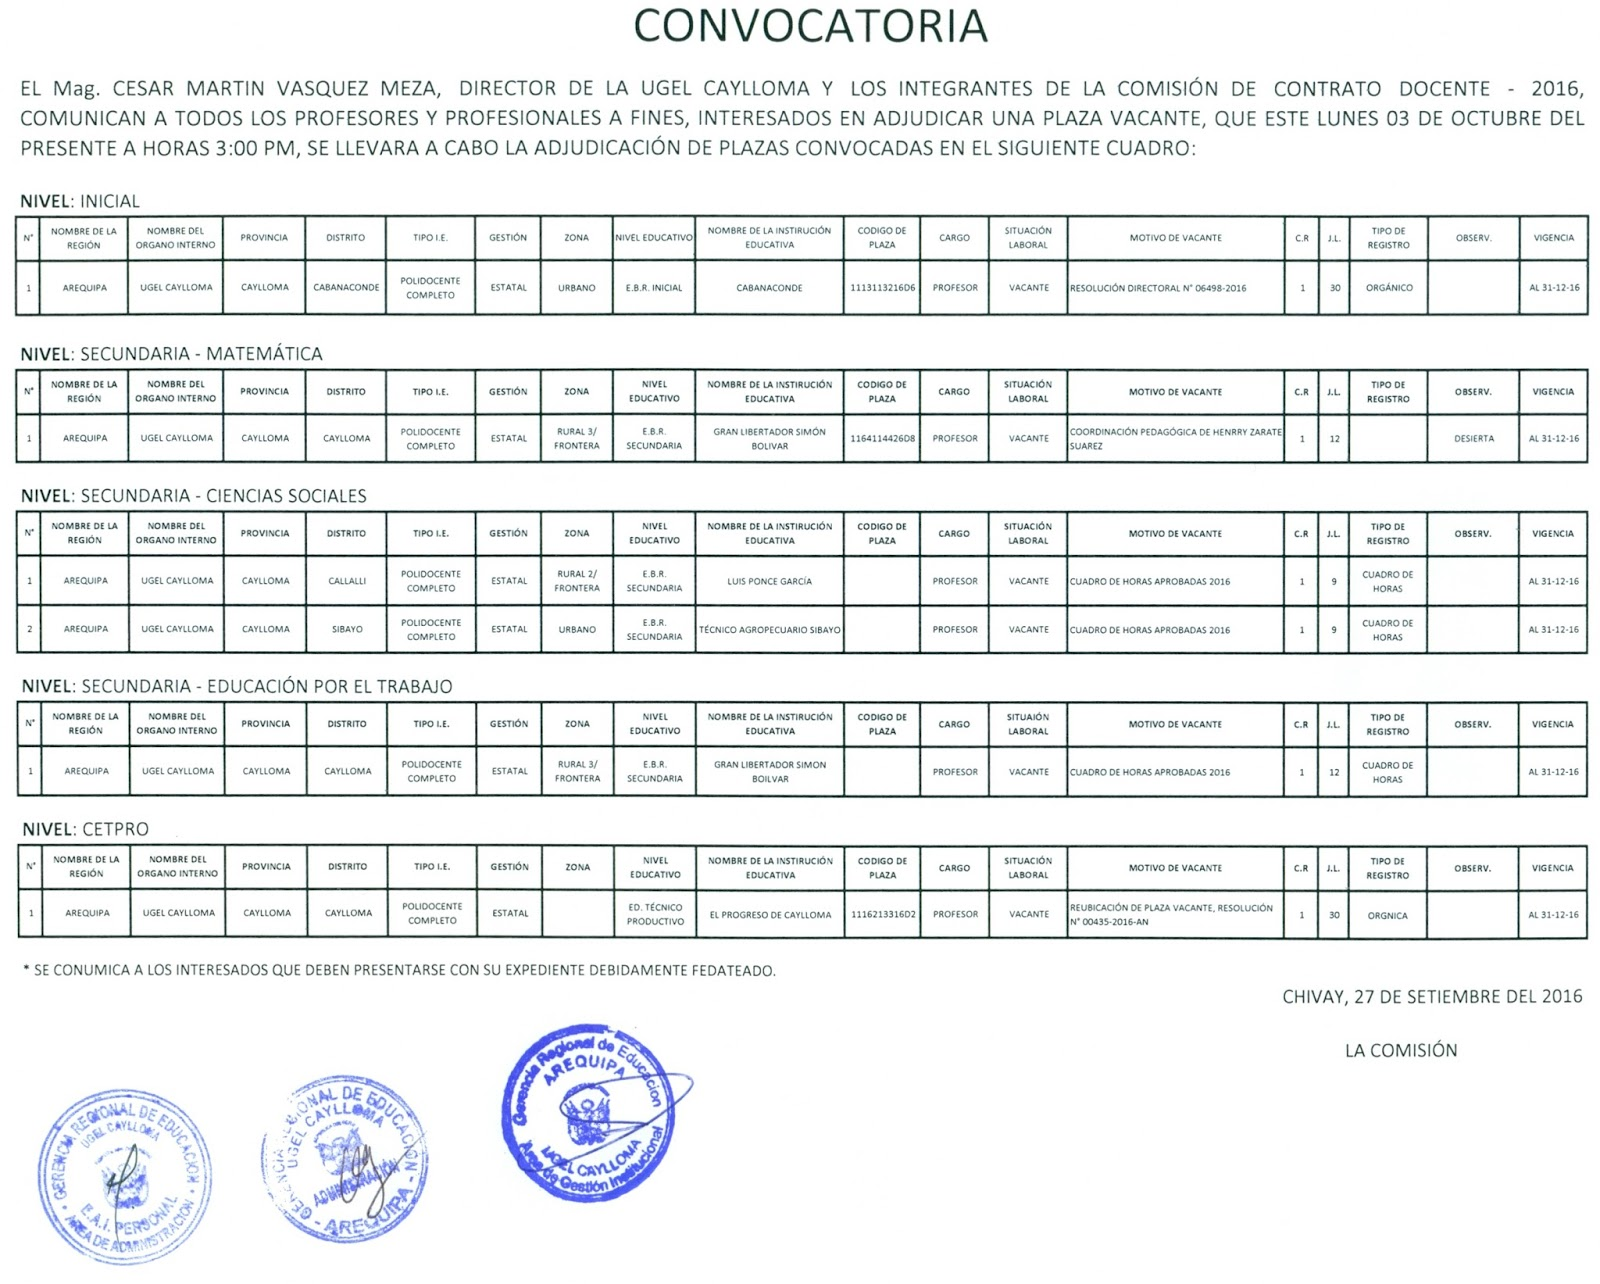 Convocatoria plazas docente ugel caylloma for Sep convocatoria plazas 2016